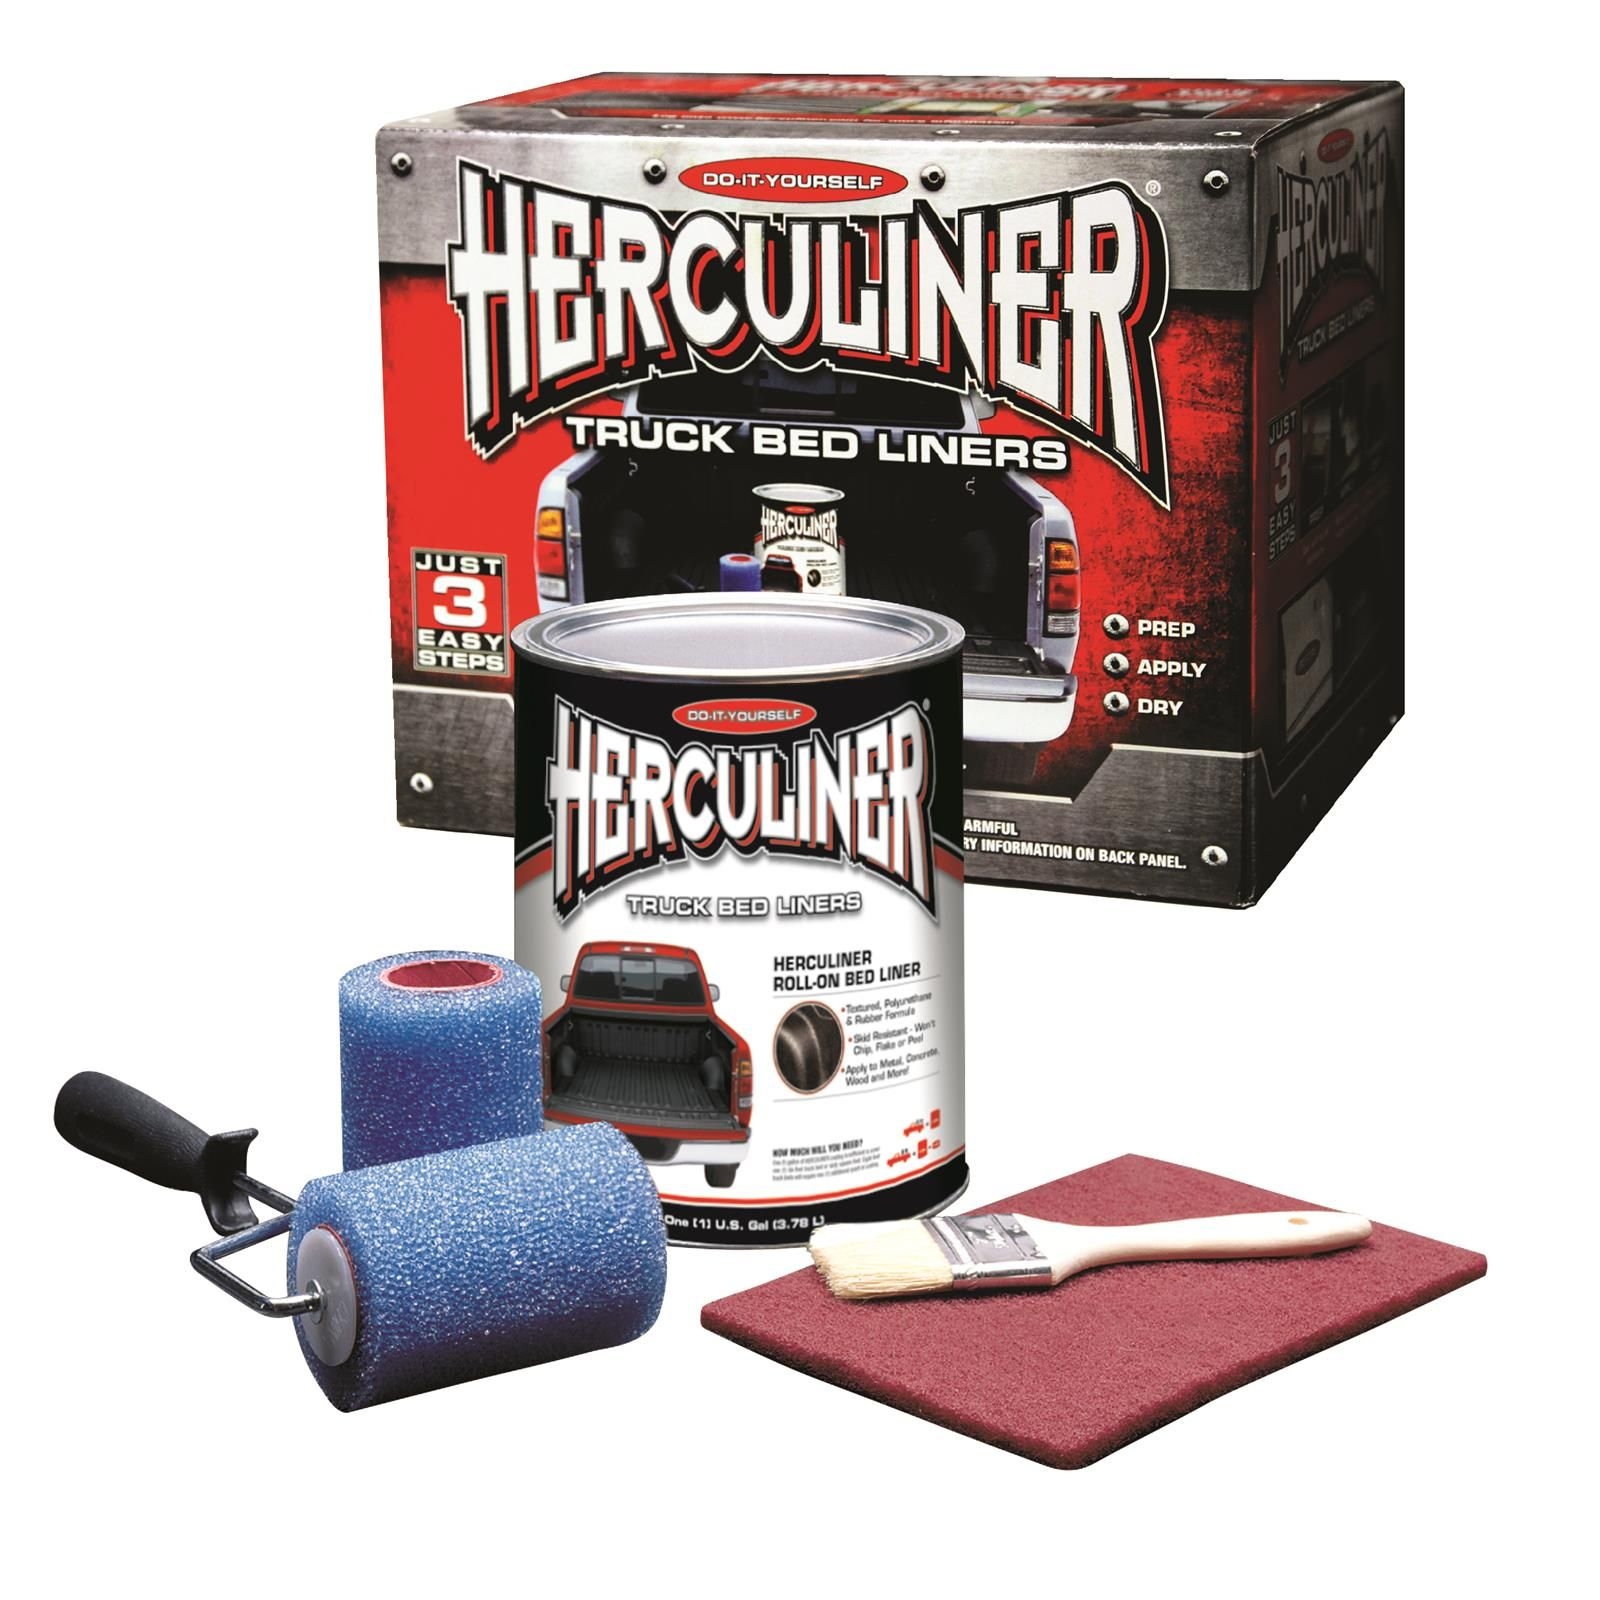 Find Herculiner Brush On Bedliner Kits Hcl1b8 And Get Free